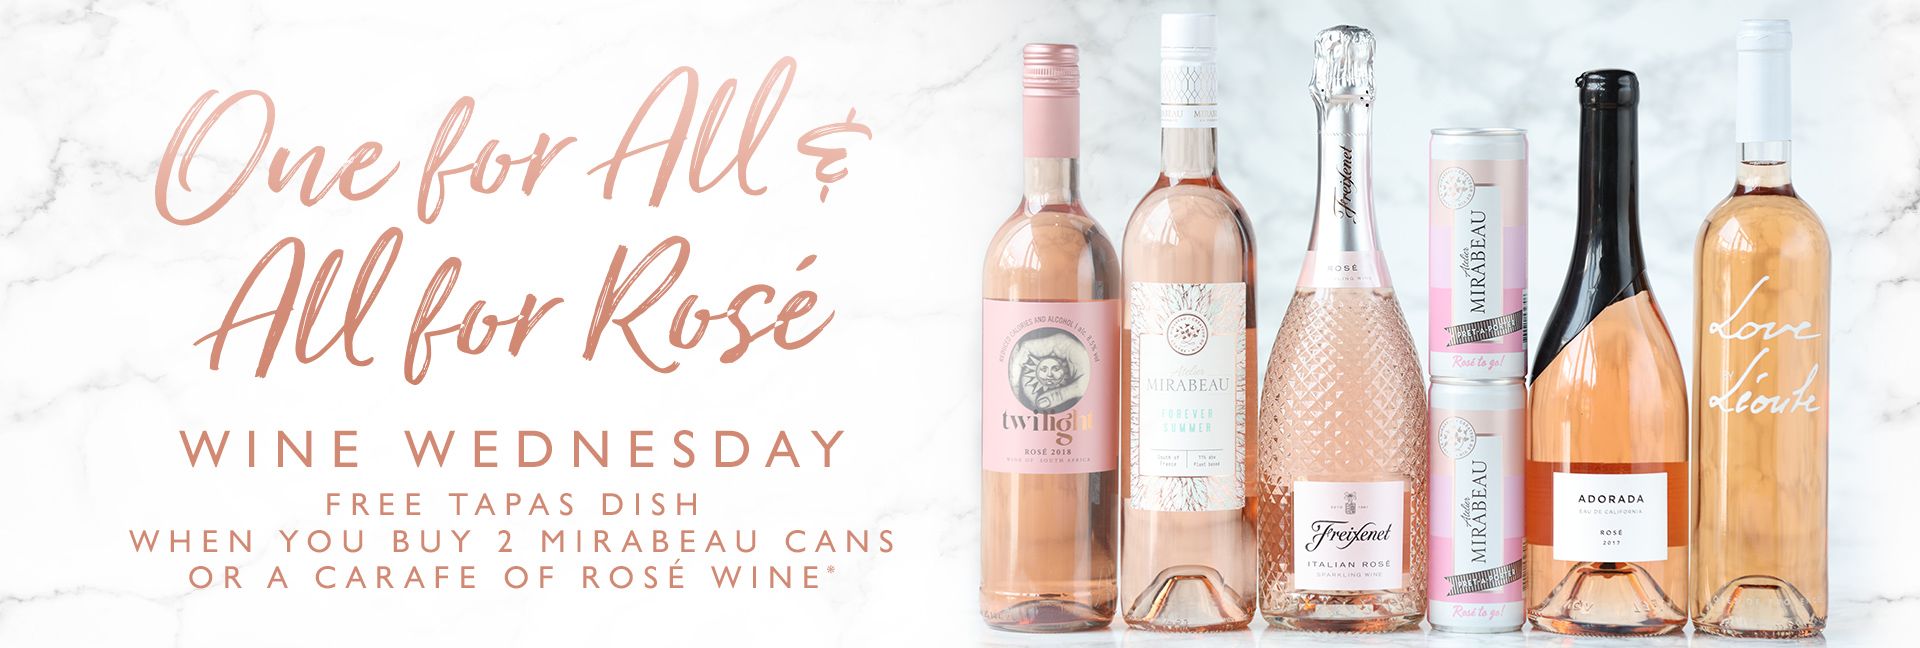 Wine Wednesday at All Bar One Southampton